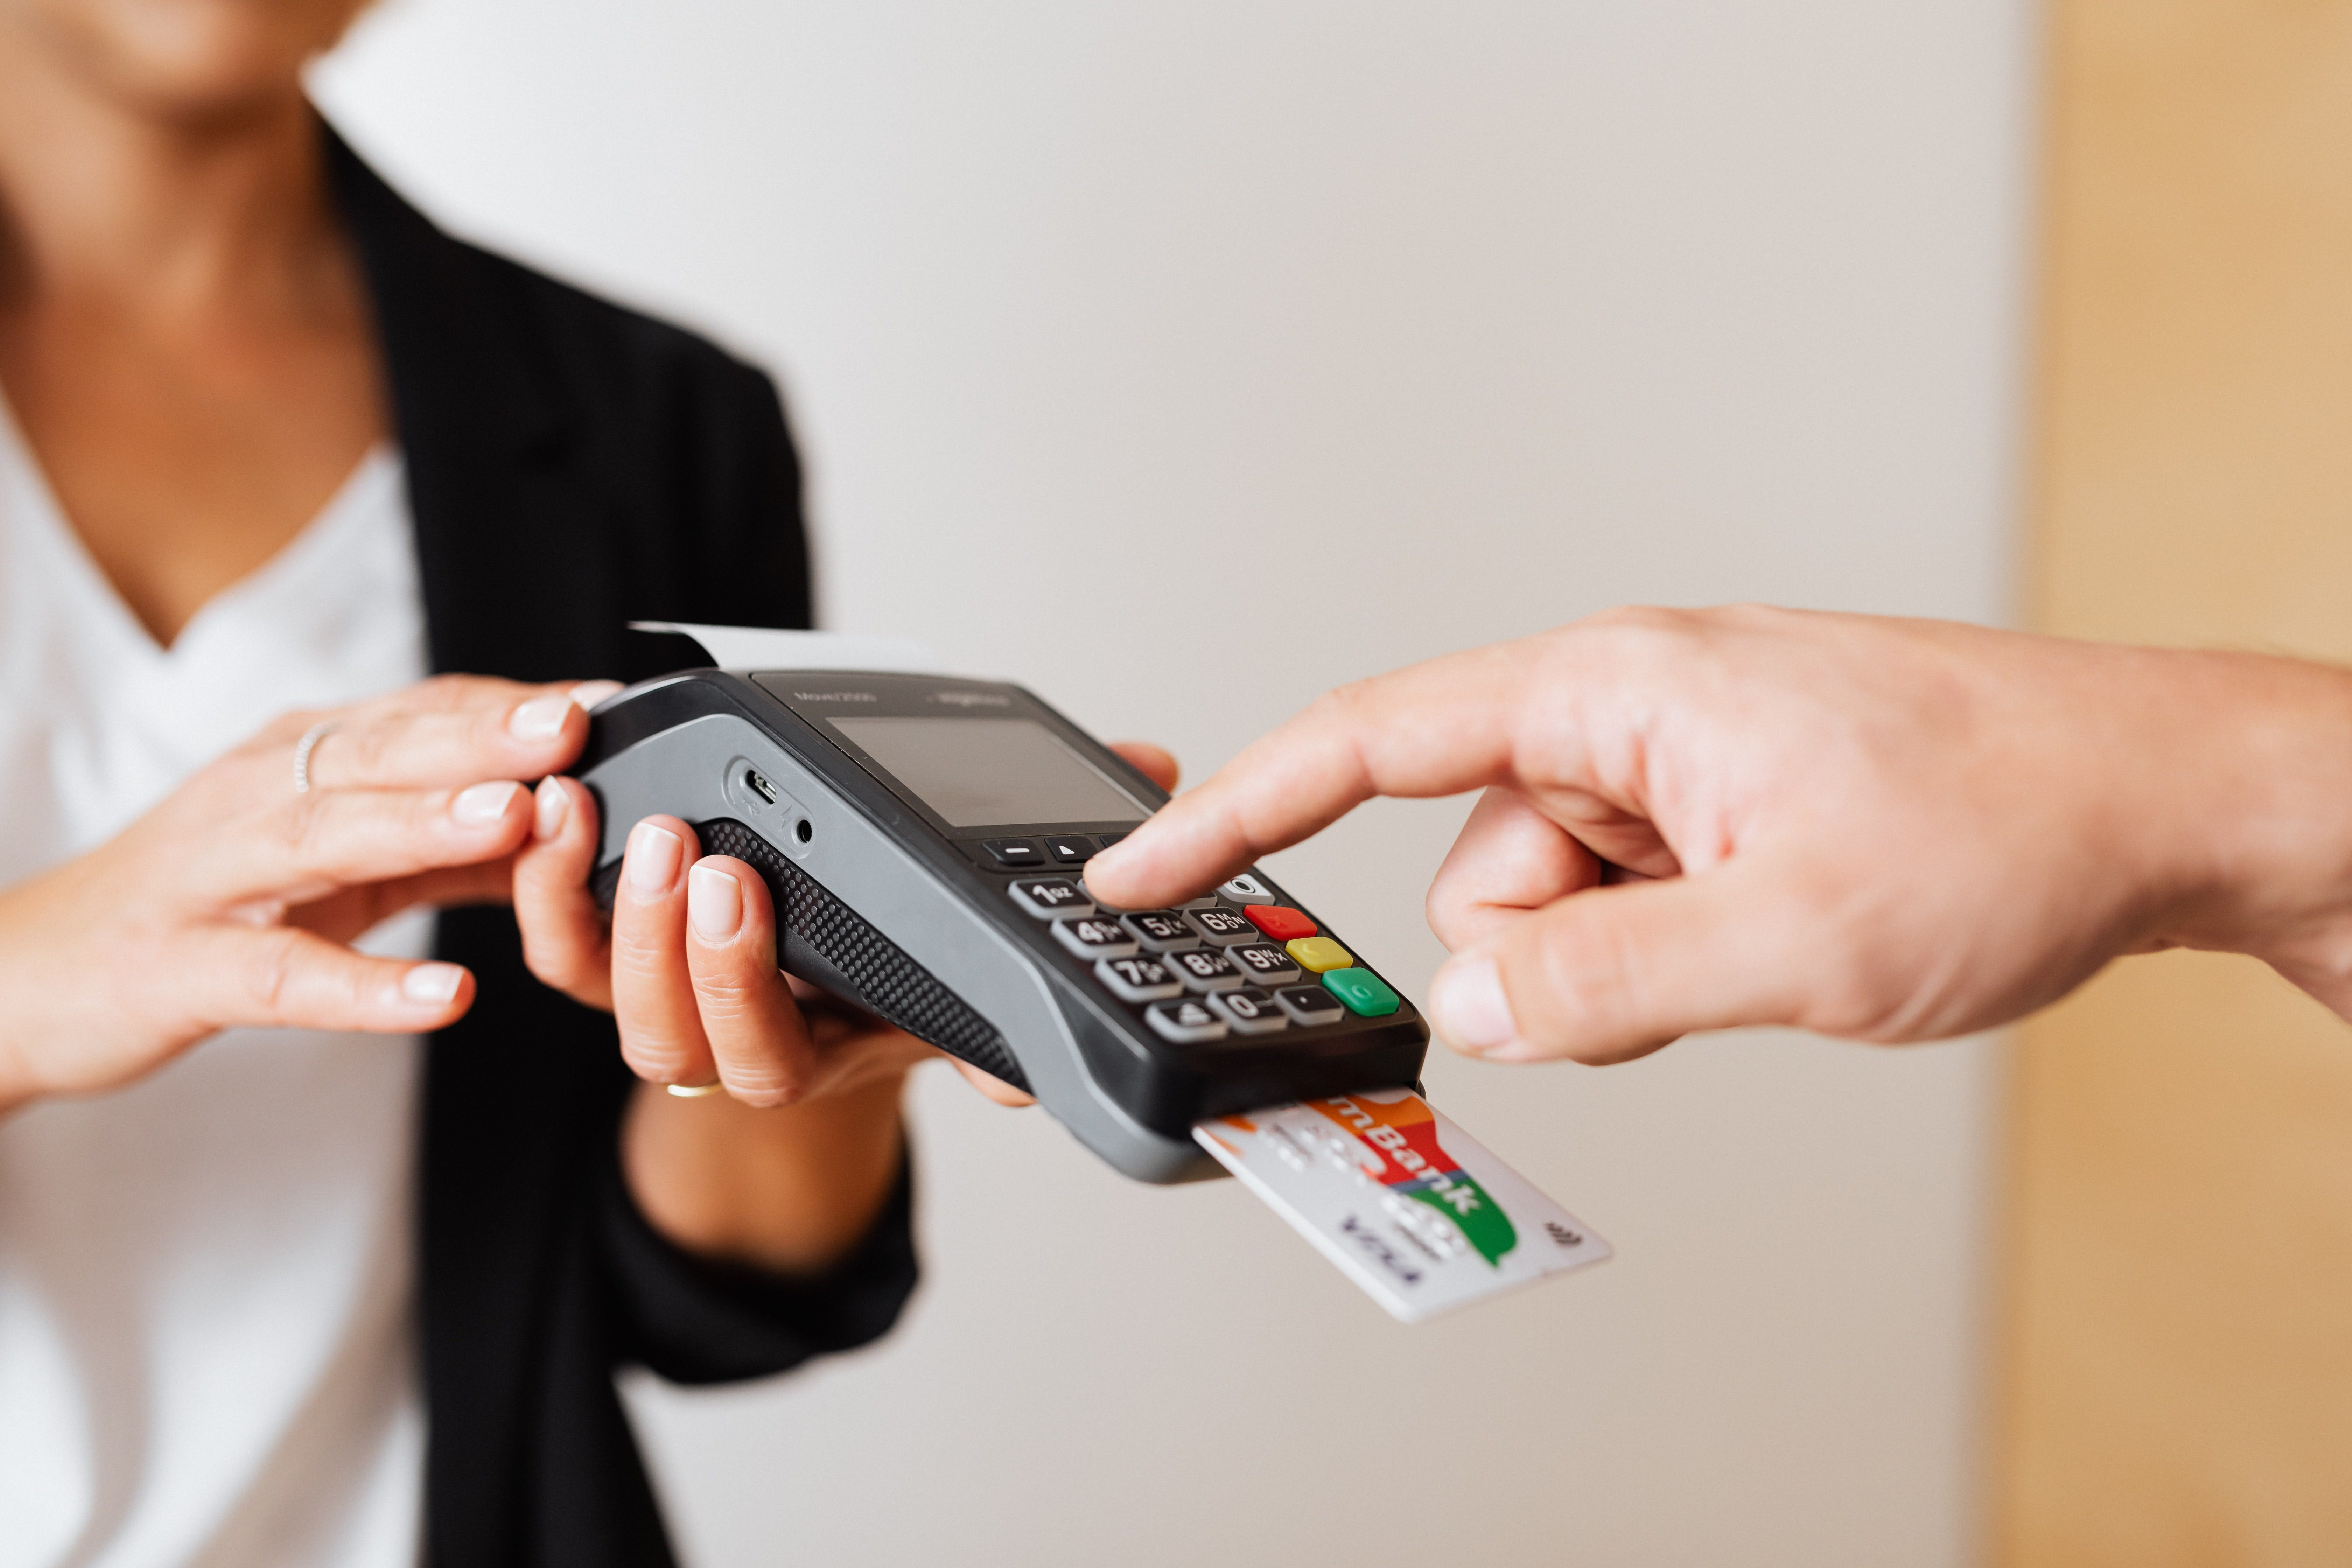 Does your ePos comply with European Fiscalization laws?